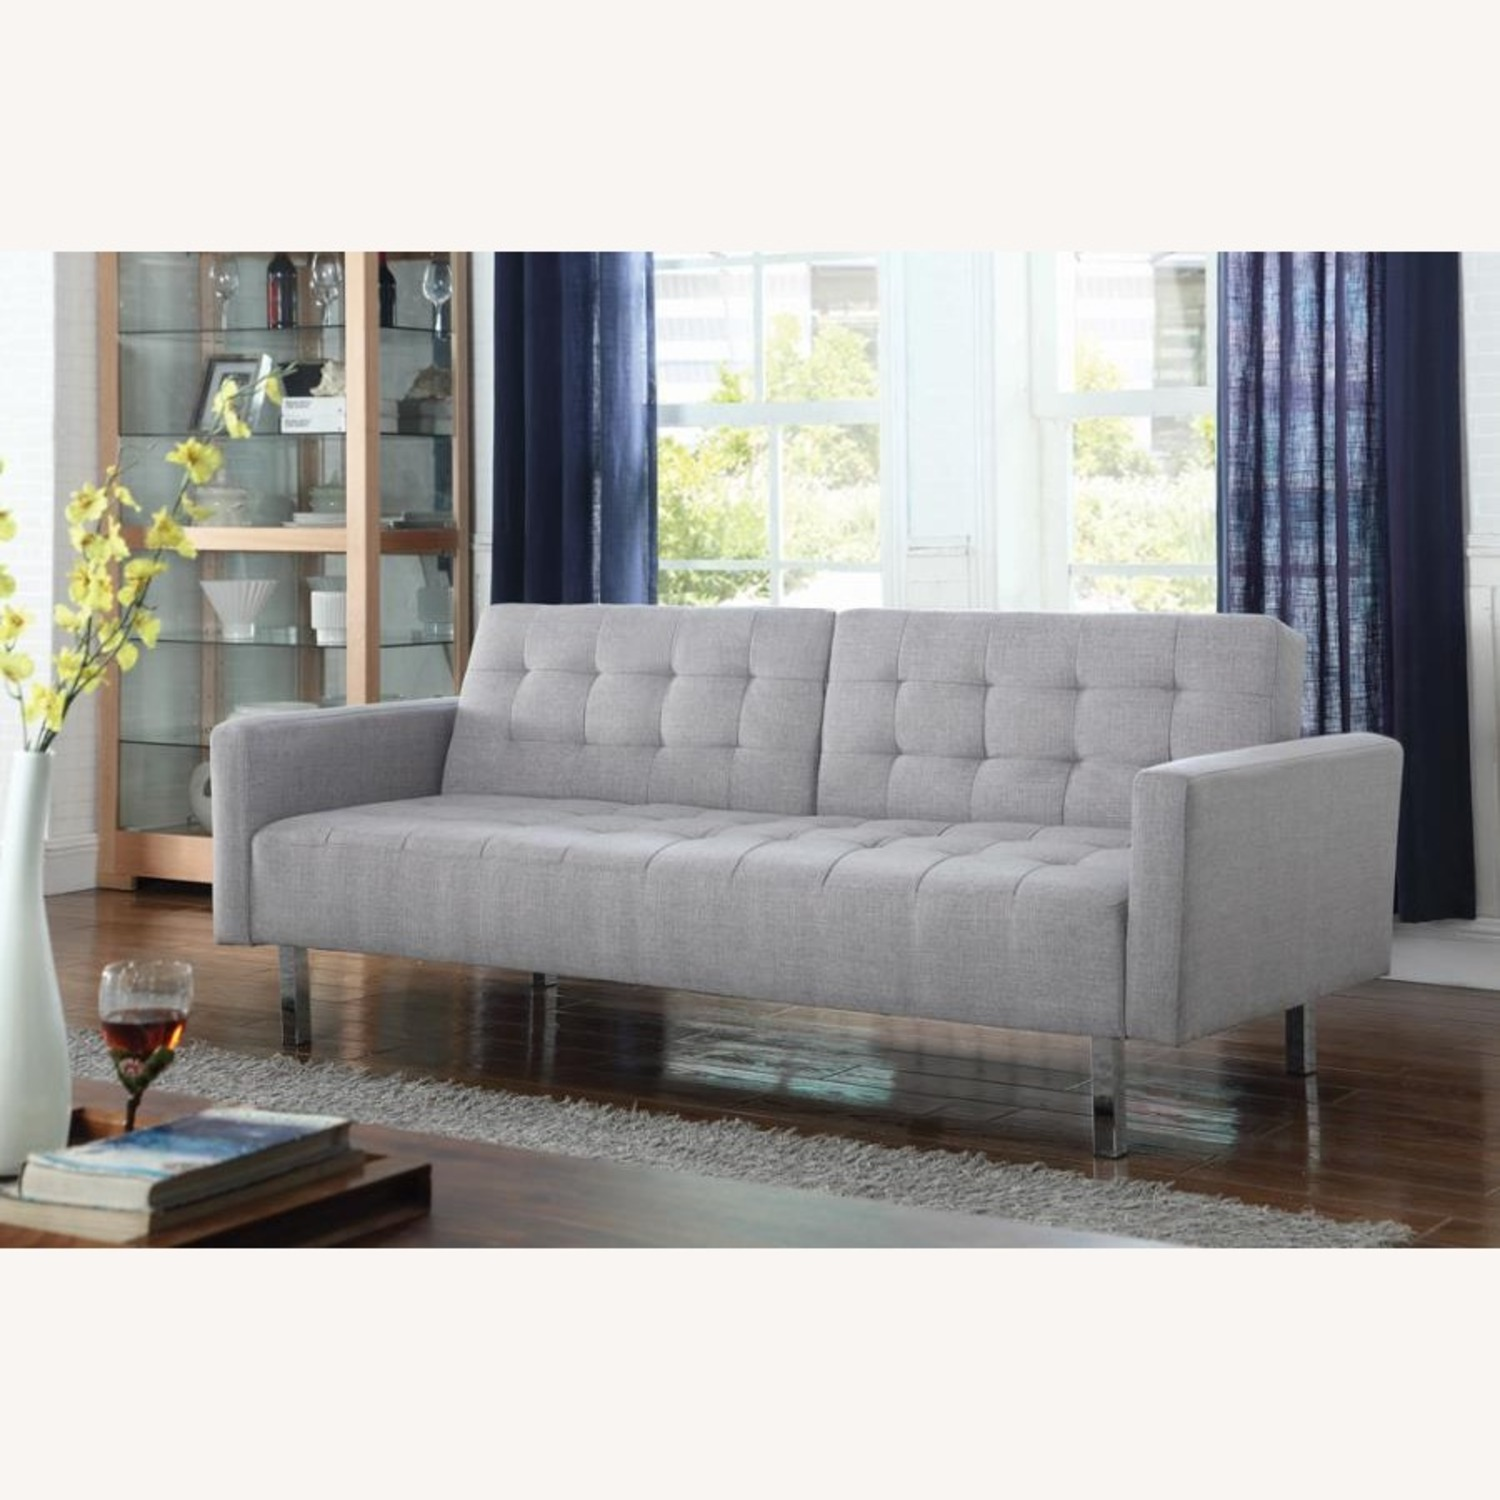 Modern Button Tufted Sofa Bed In Light Grey Fabric - image-2